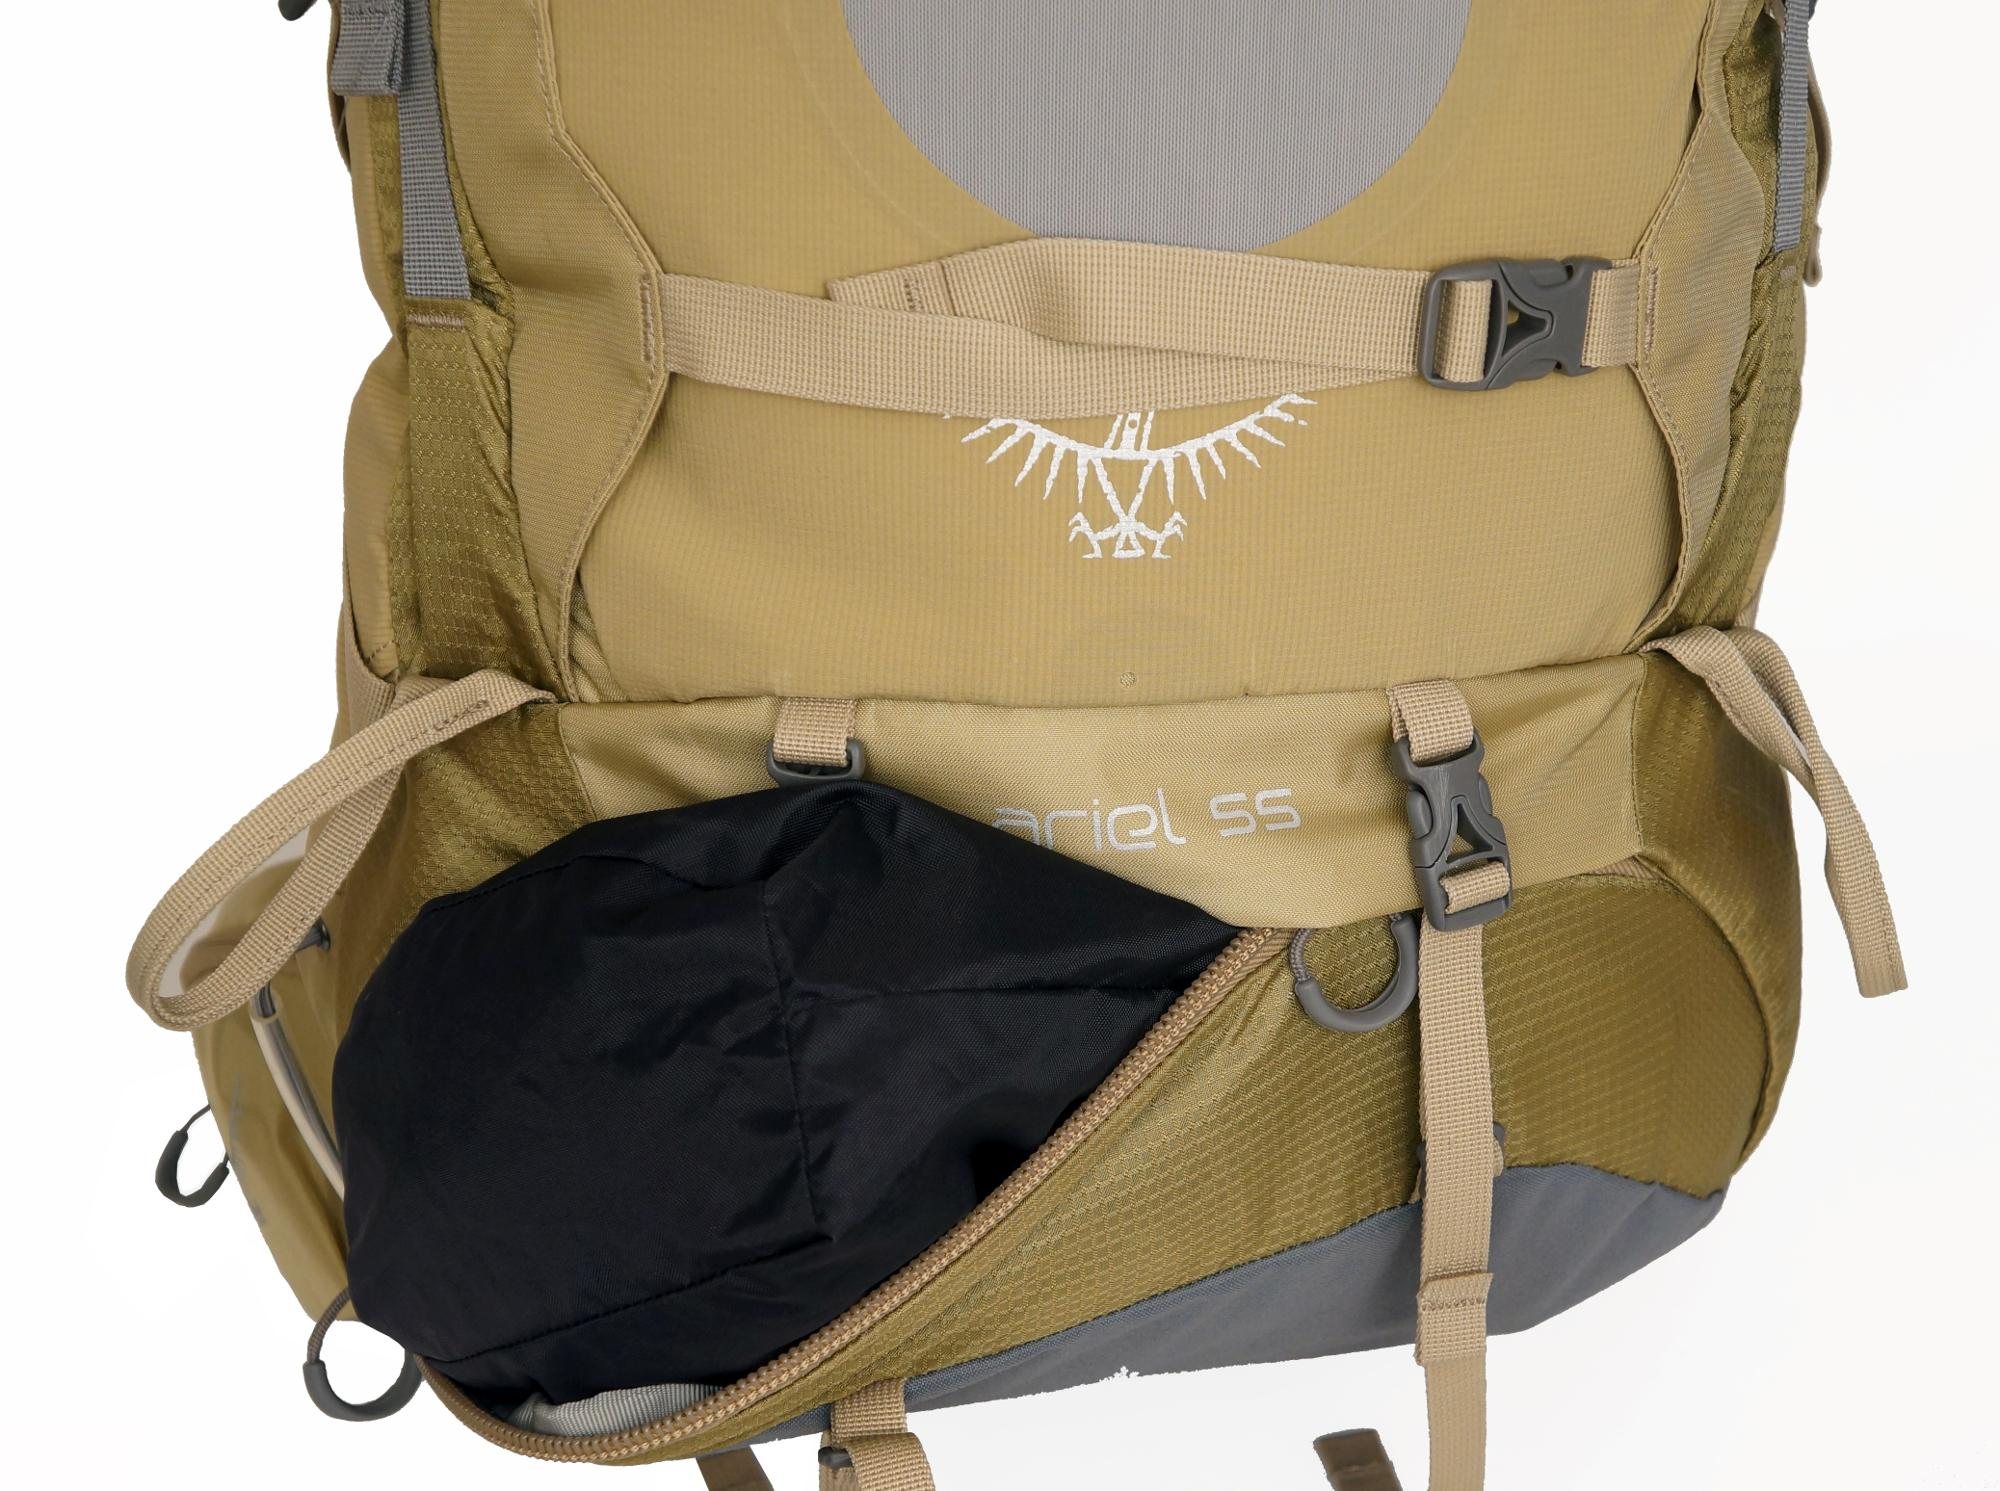 Osprey Aether 70 Backpack Review